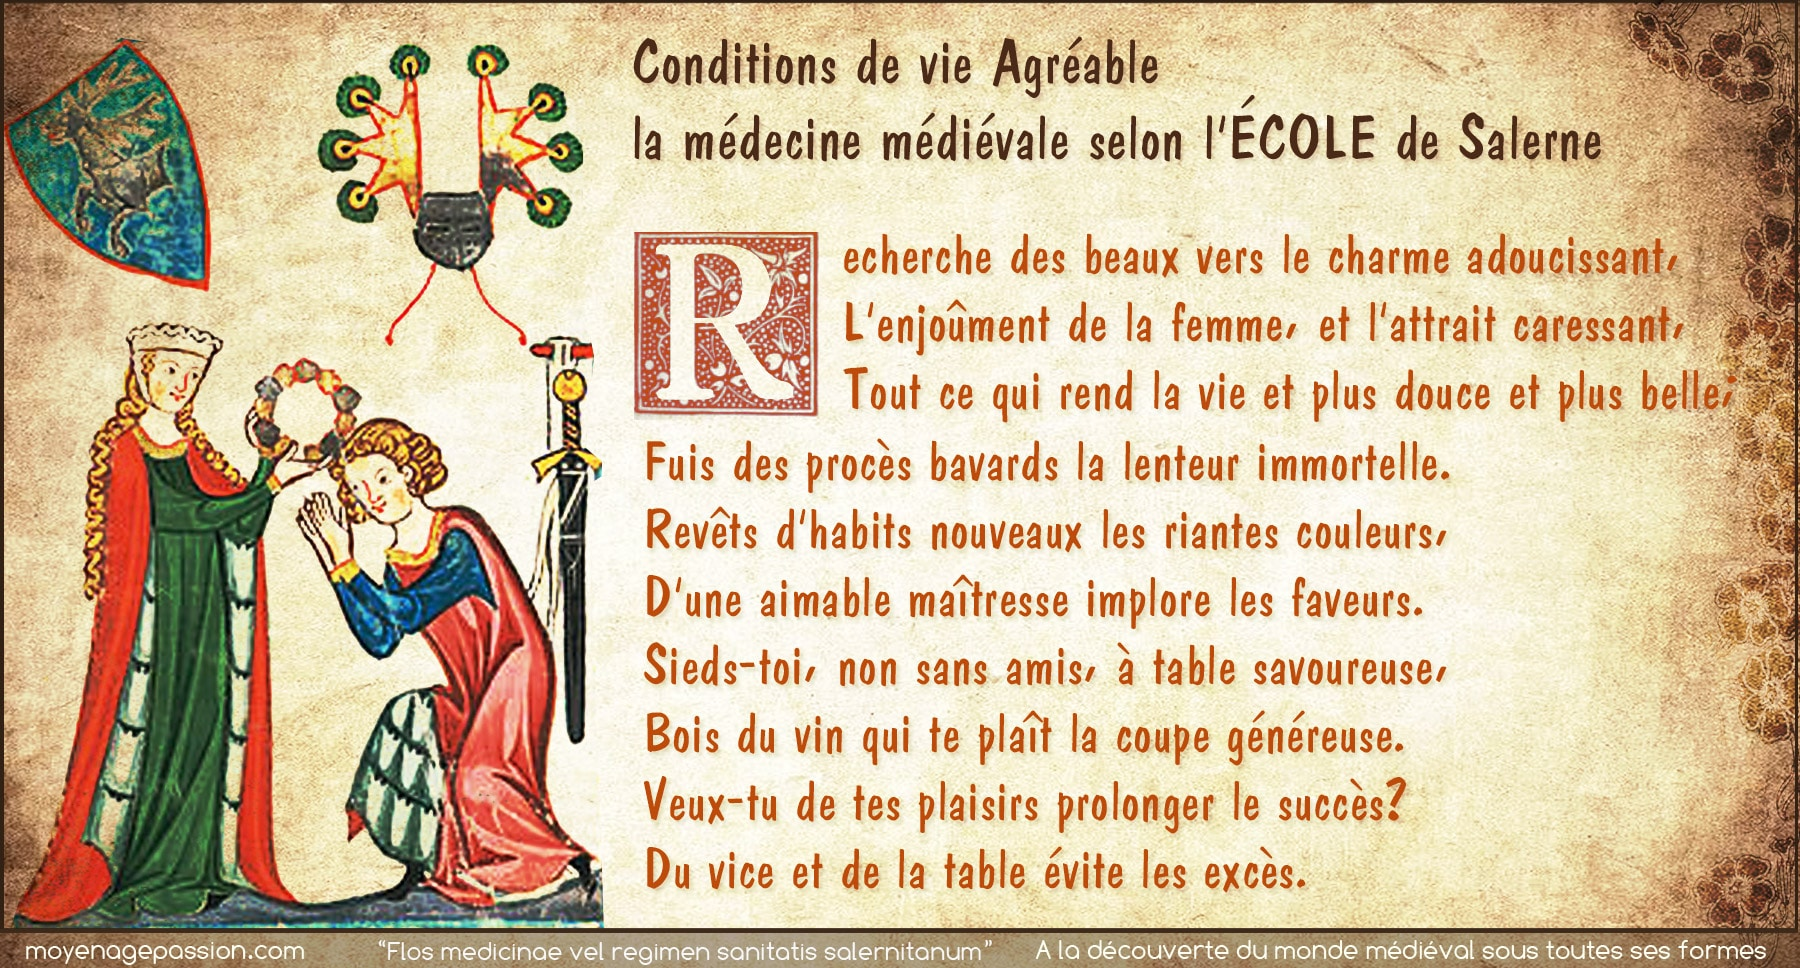 ecole_salerne_citation_medecine_medievale_amour_hygiene_vie_agreable_moyen-age_central